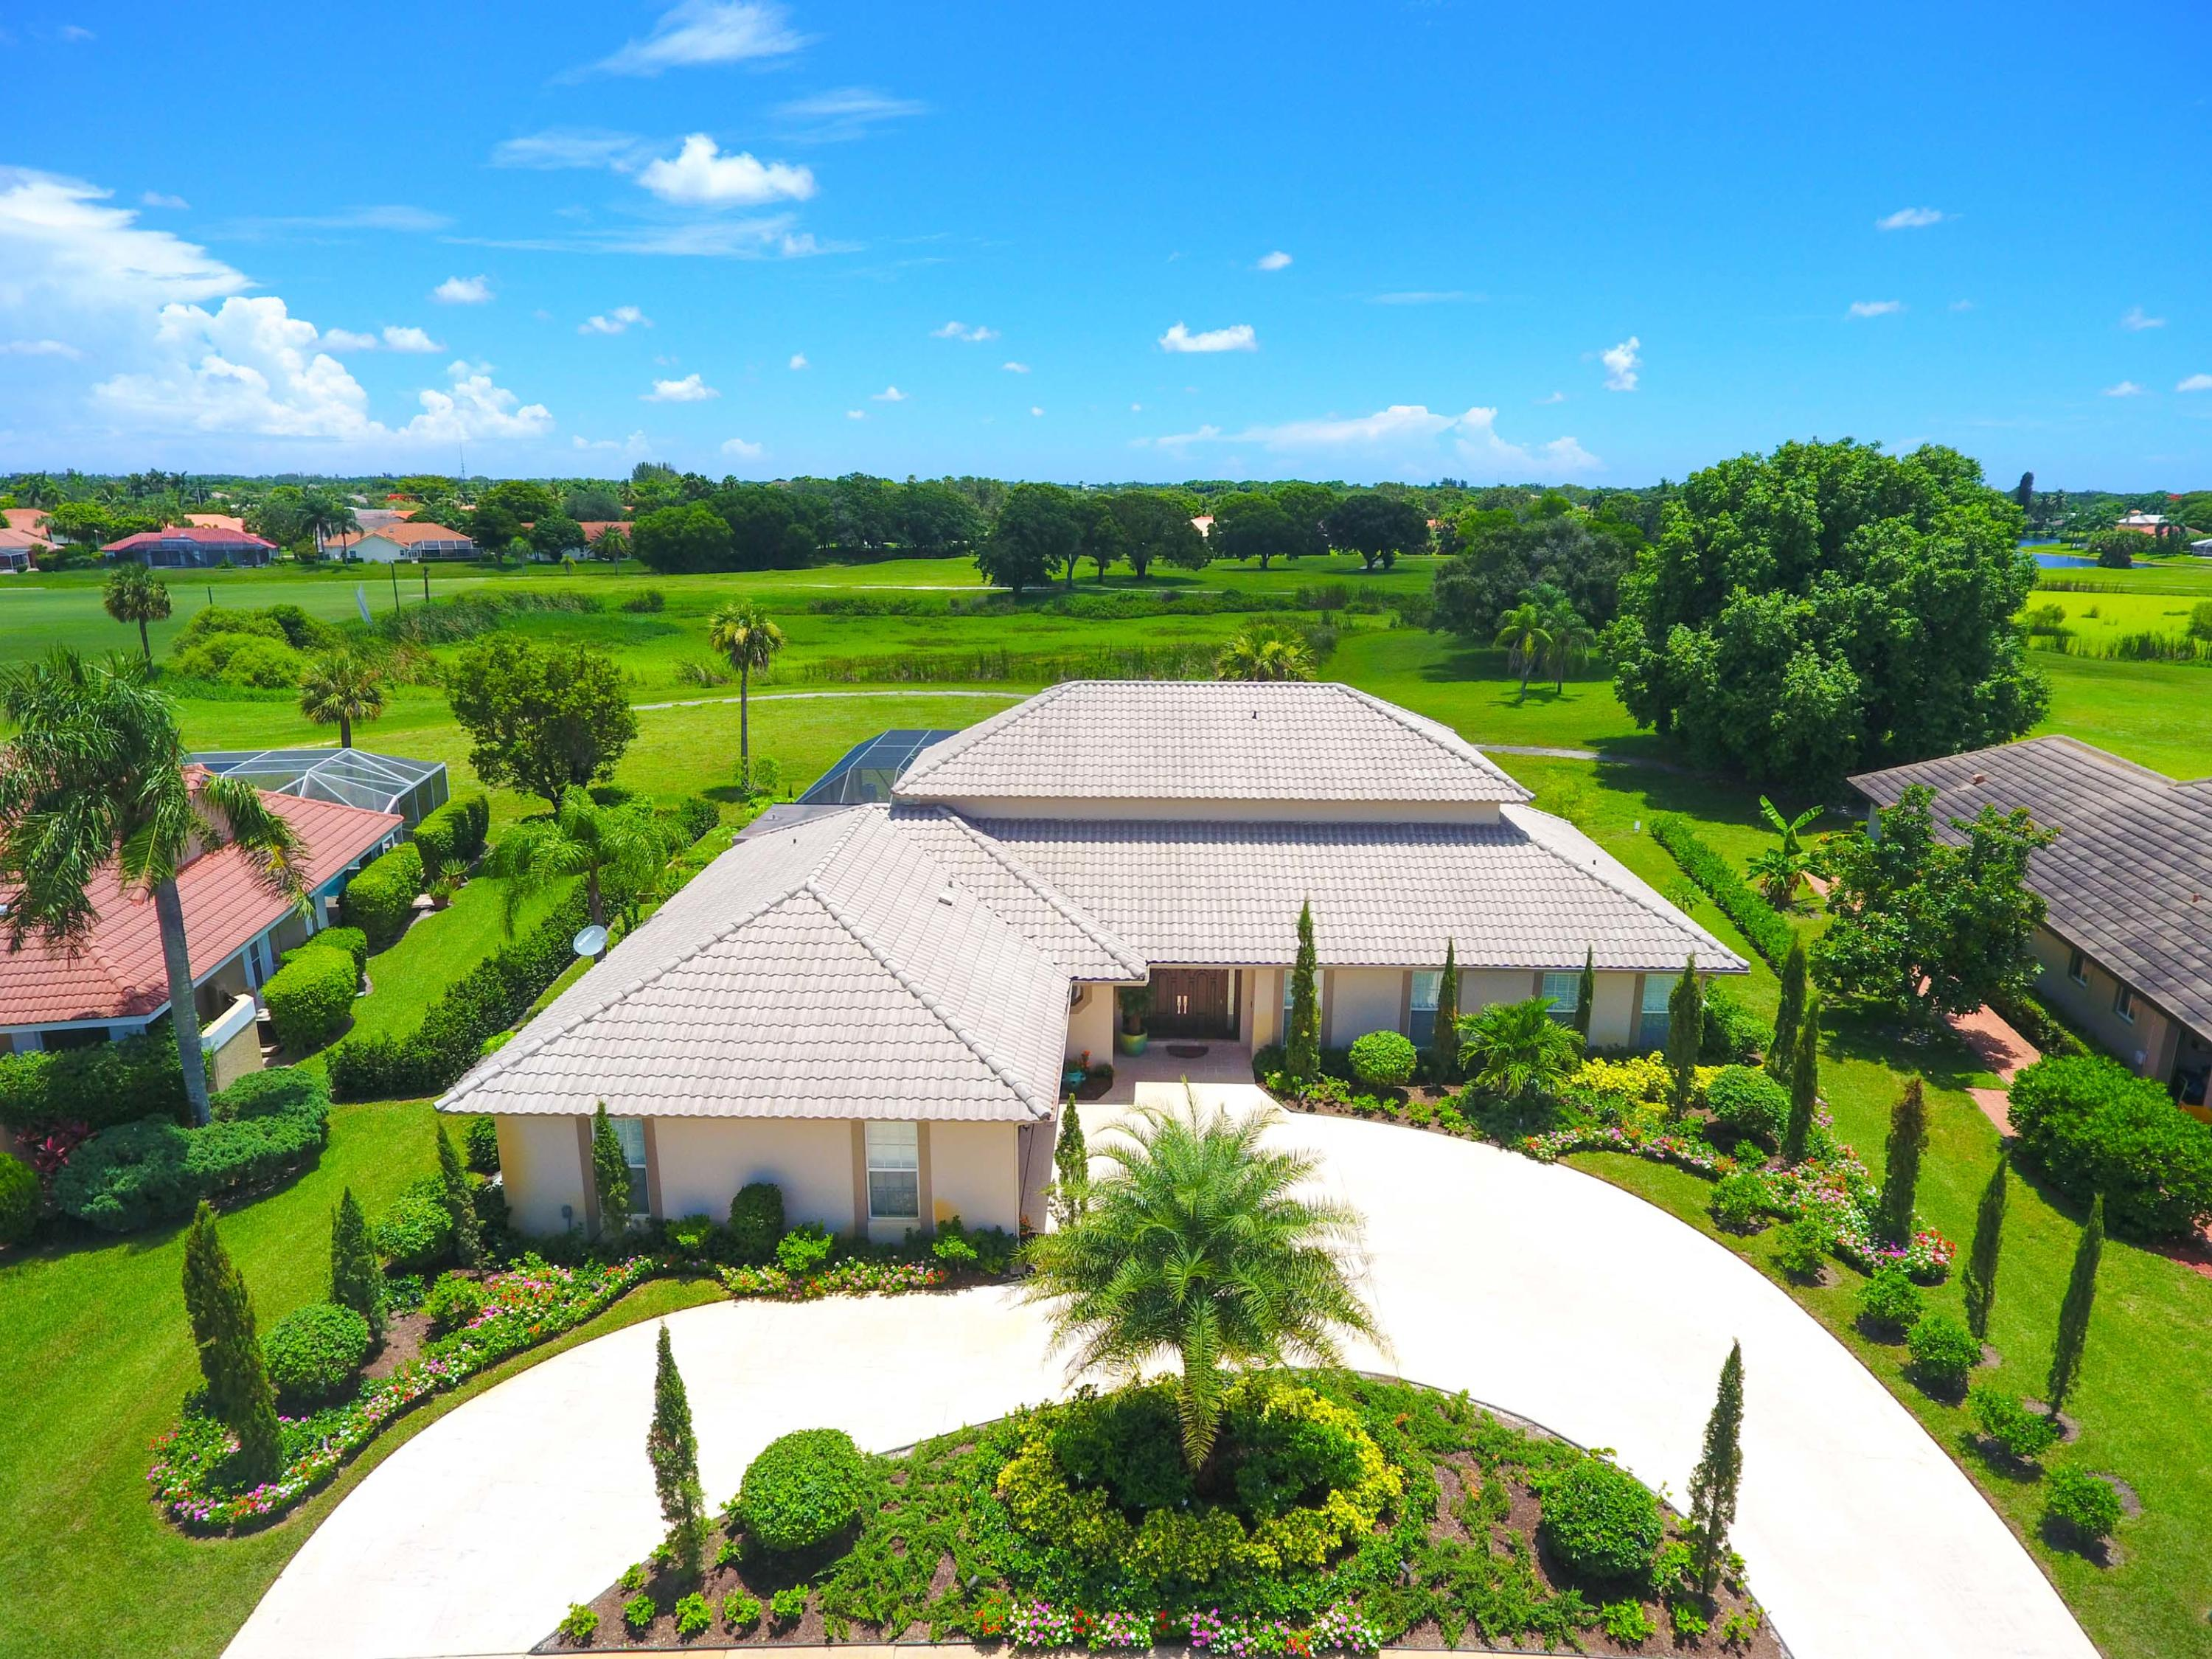 Home for sale in Polo West - Greenview Cove Wellington Florida